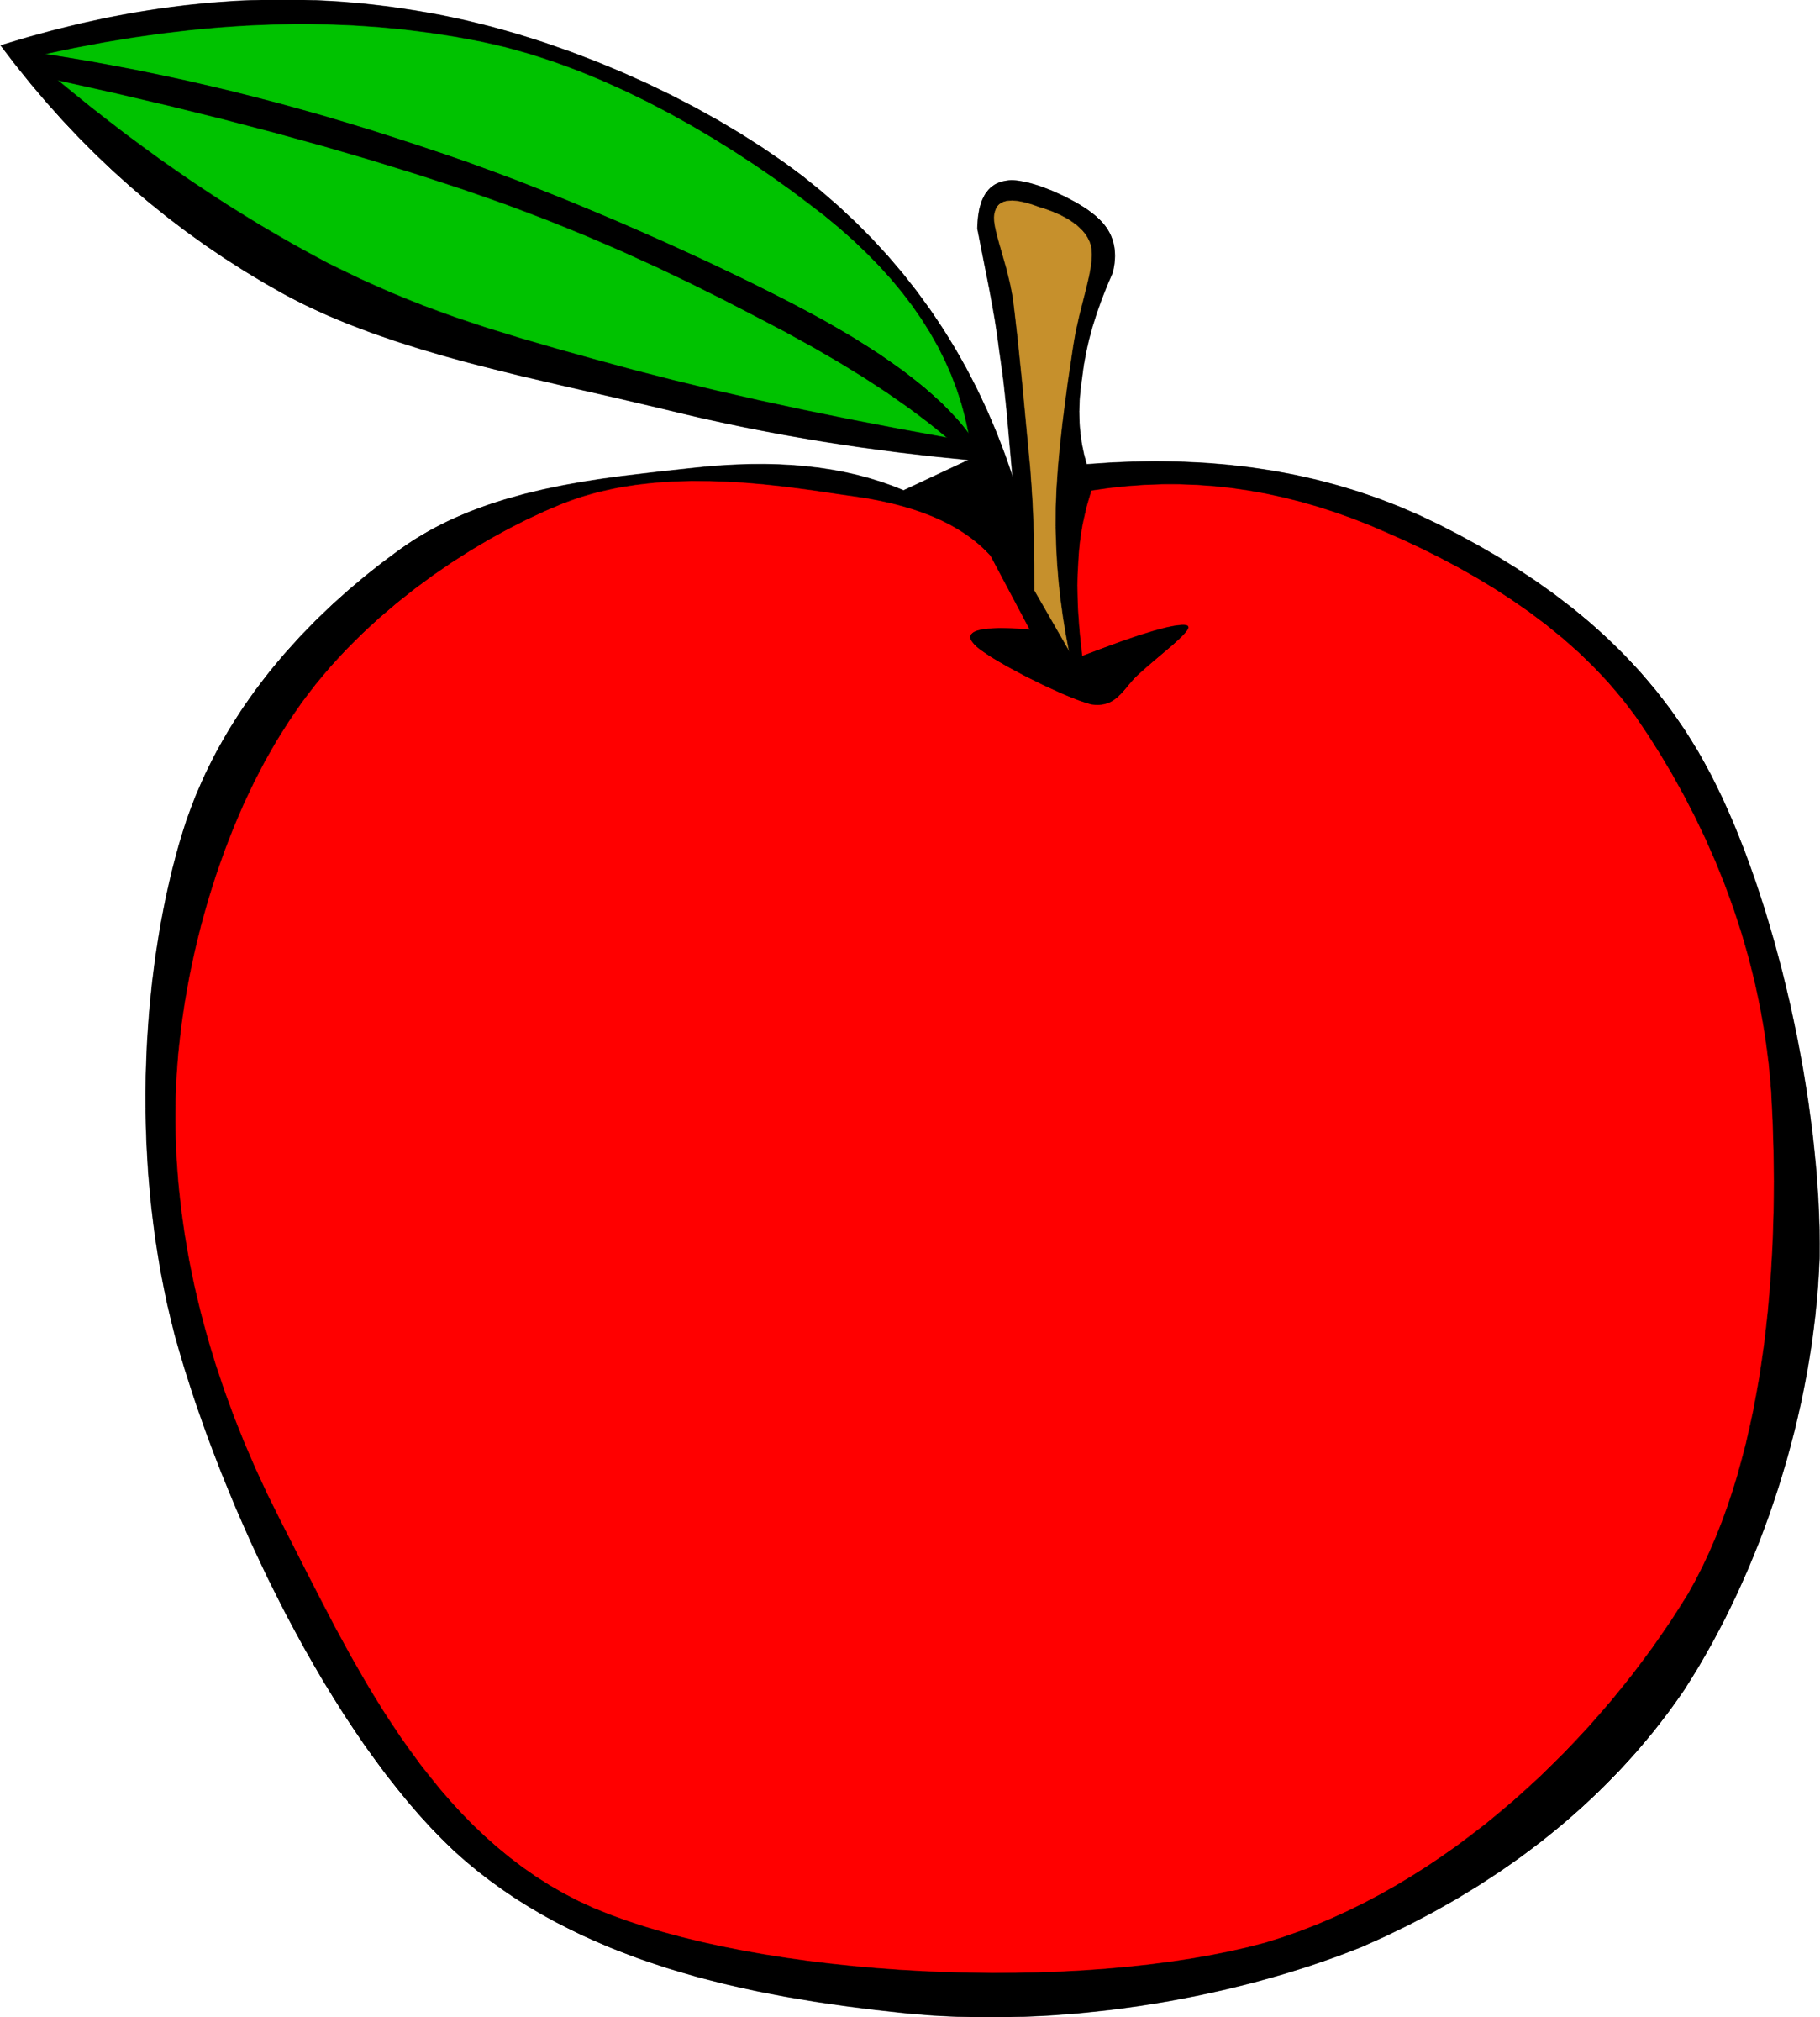 Apple flat clipart clip art transparent Clipart - Simple Fruit Apple clip art transparent